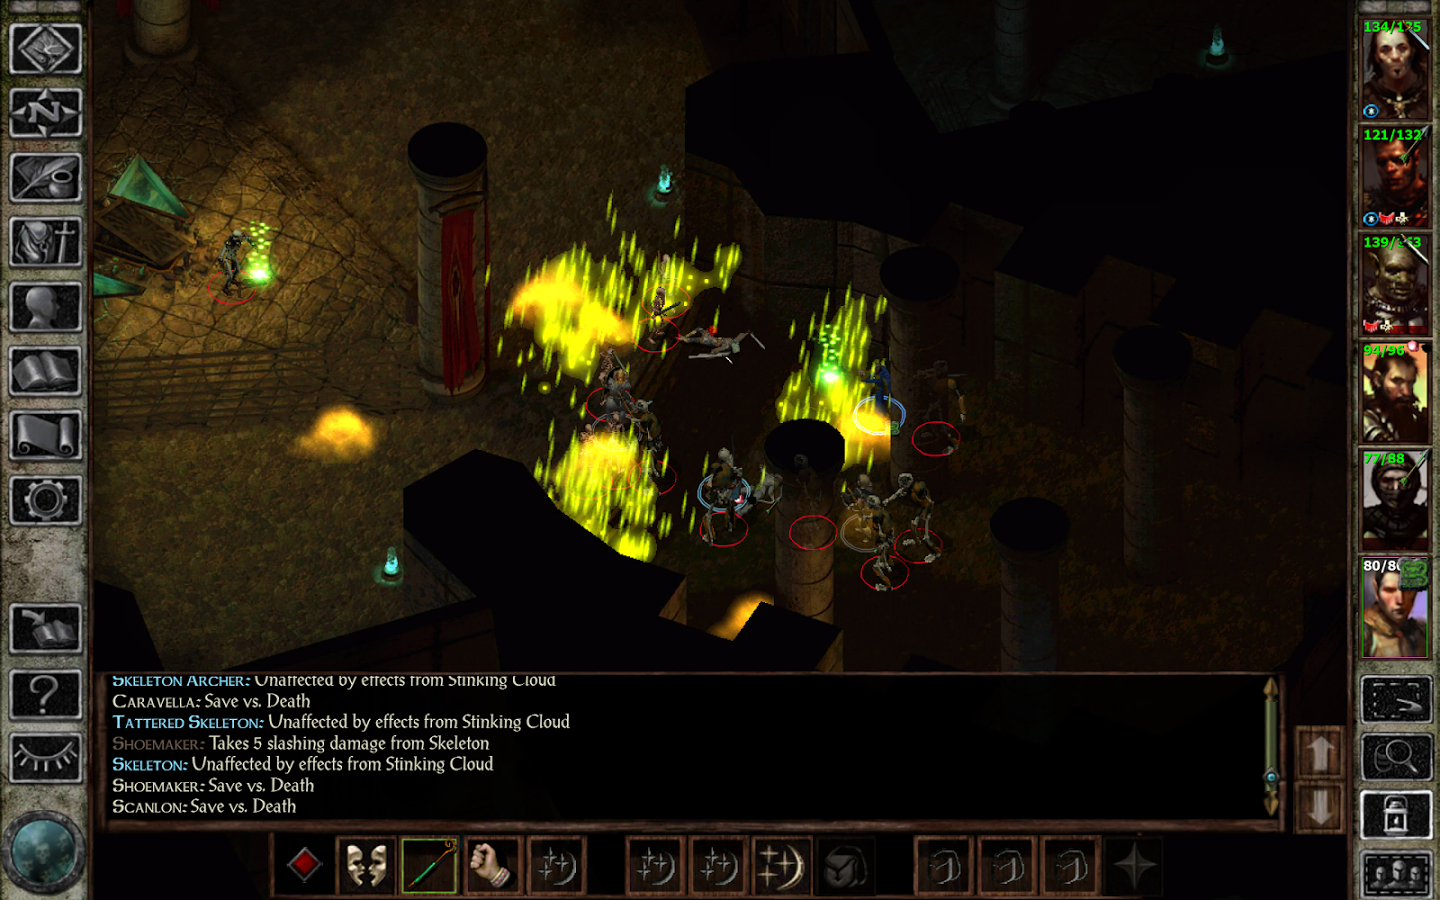 Classic pc rpg icewind dale begins questing on android, nerds of a certain age squeal with joy